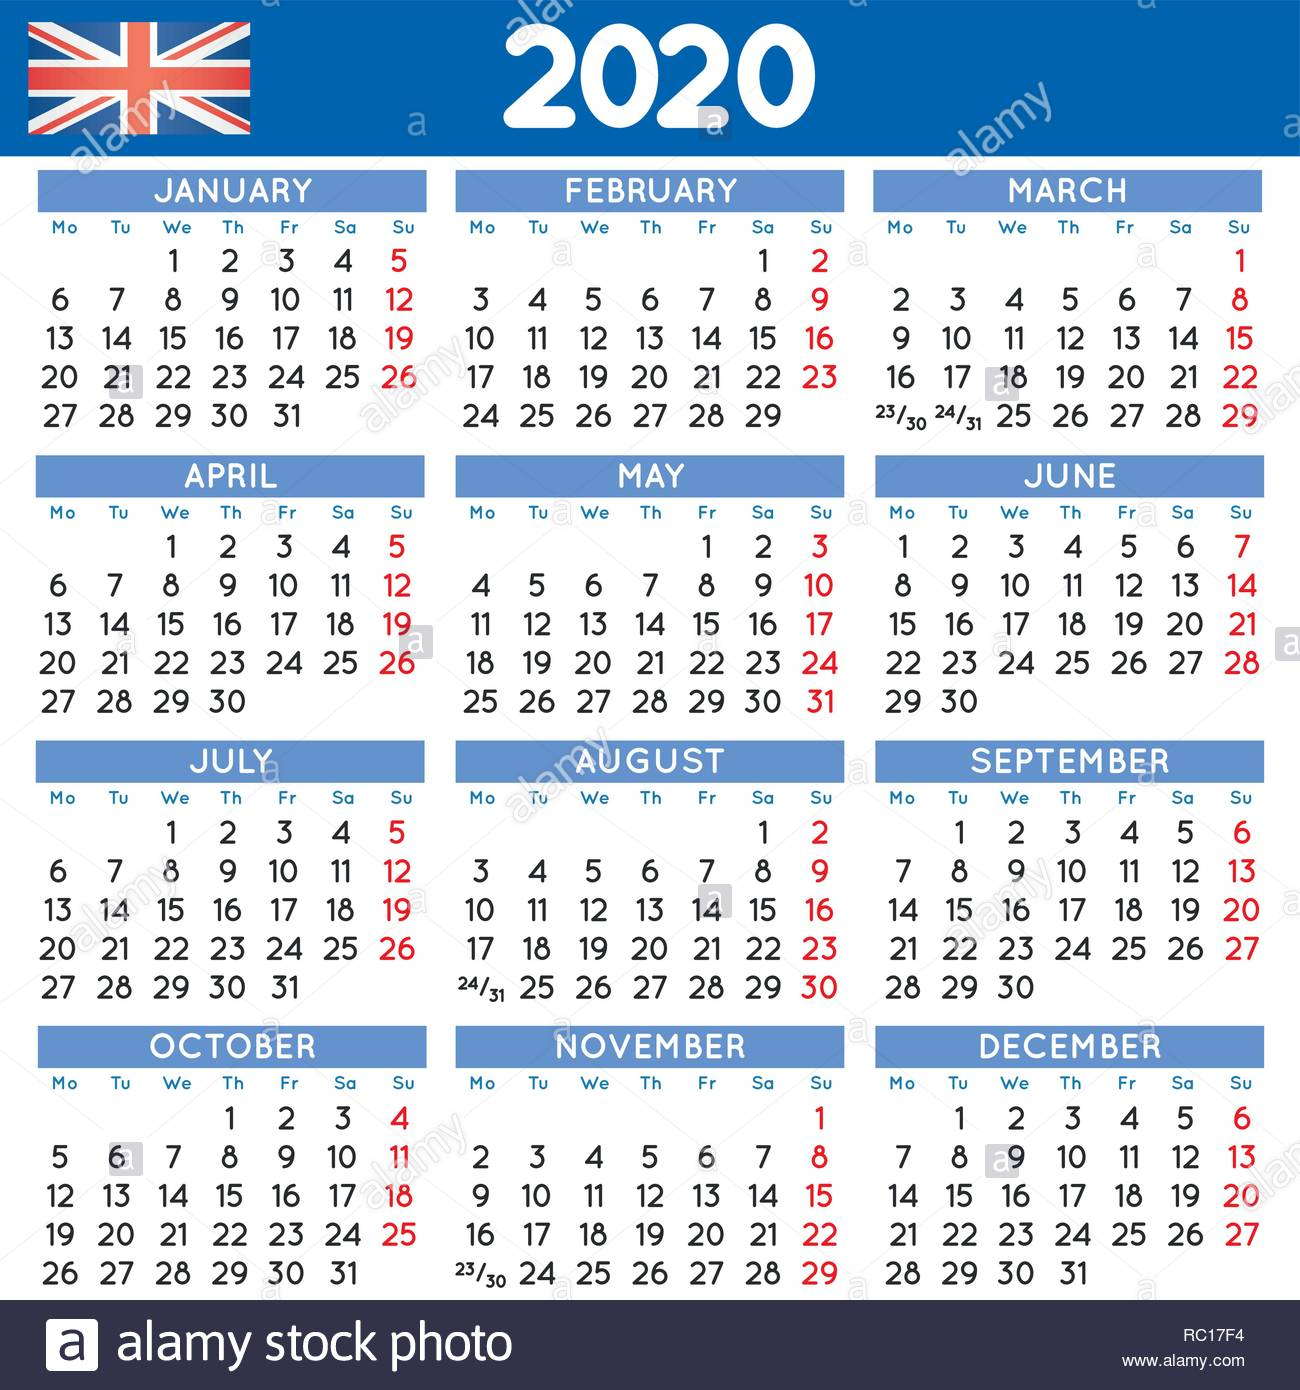 Calendar 6 Weeks December - January 2020-2020 2020 elegant squared calendar english UK. Year 2020 calendar